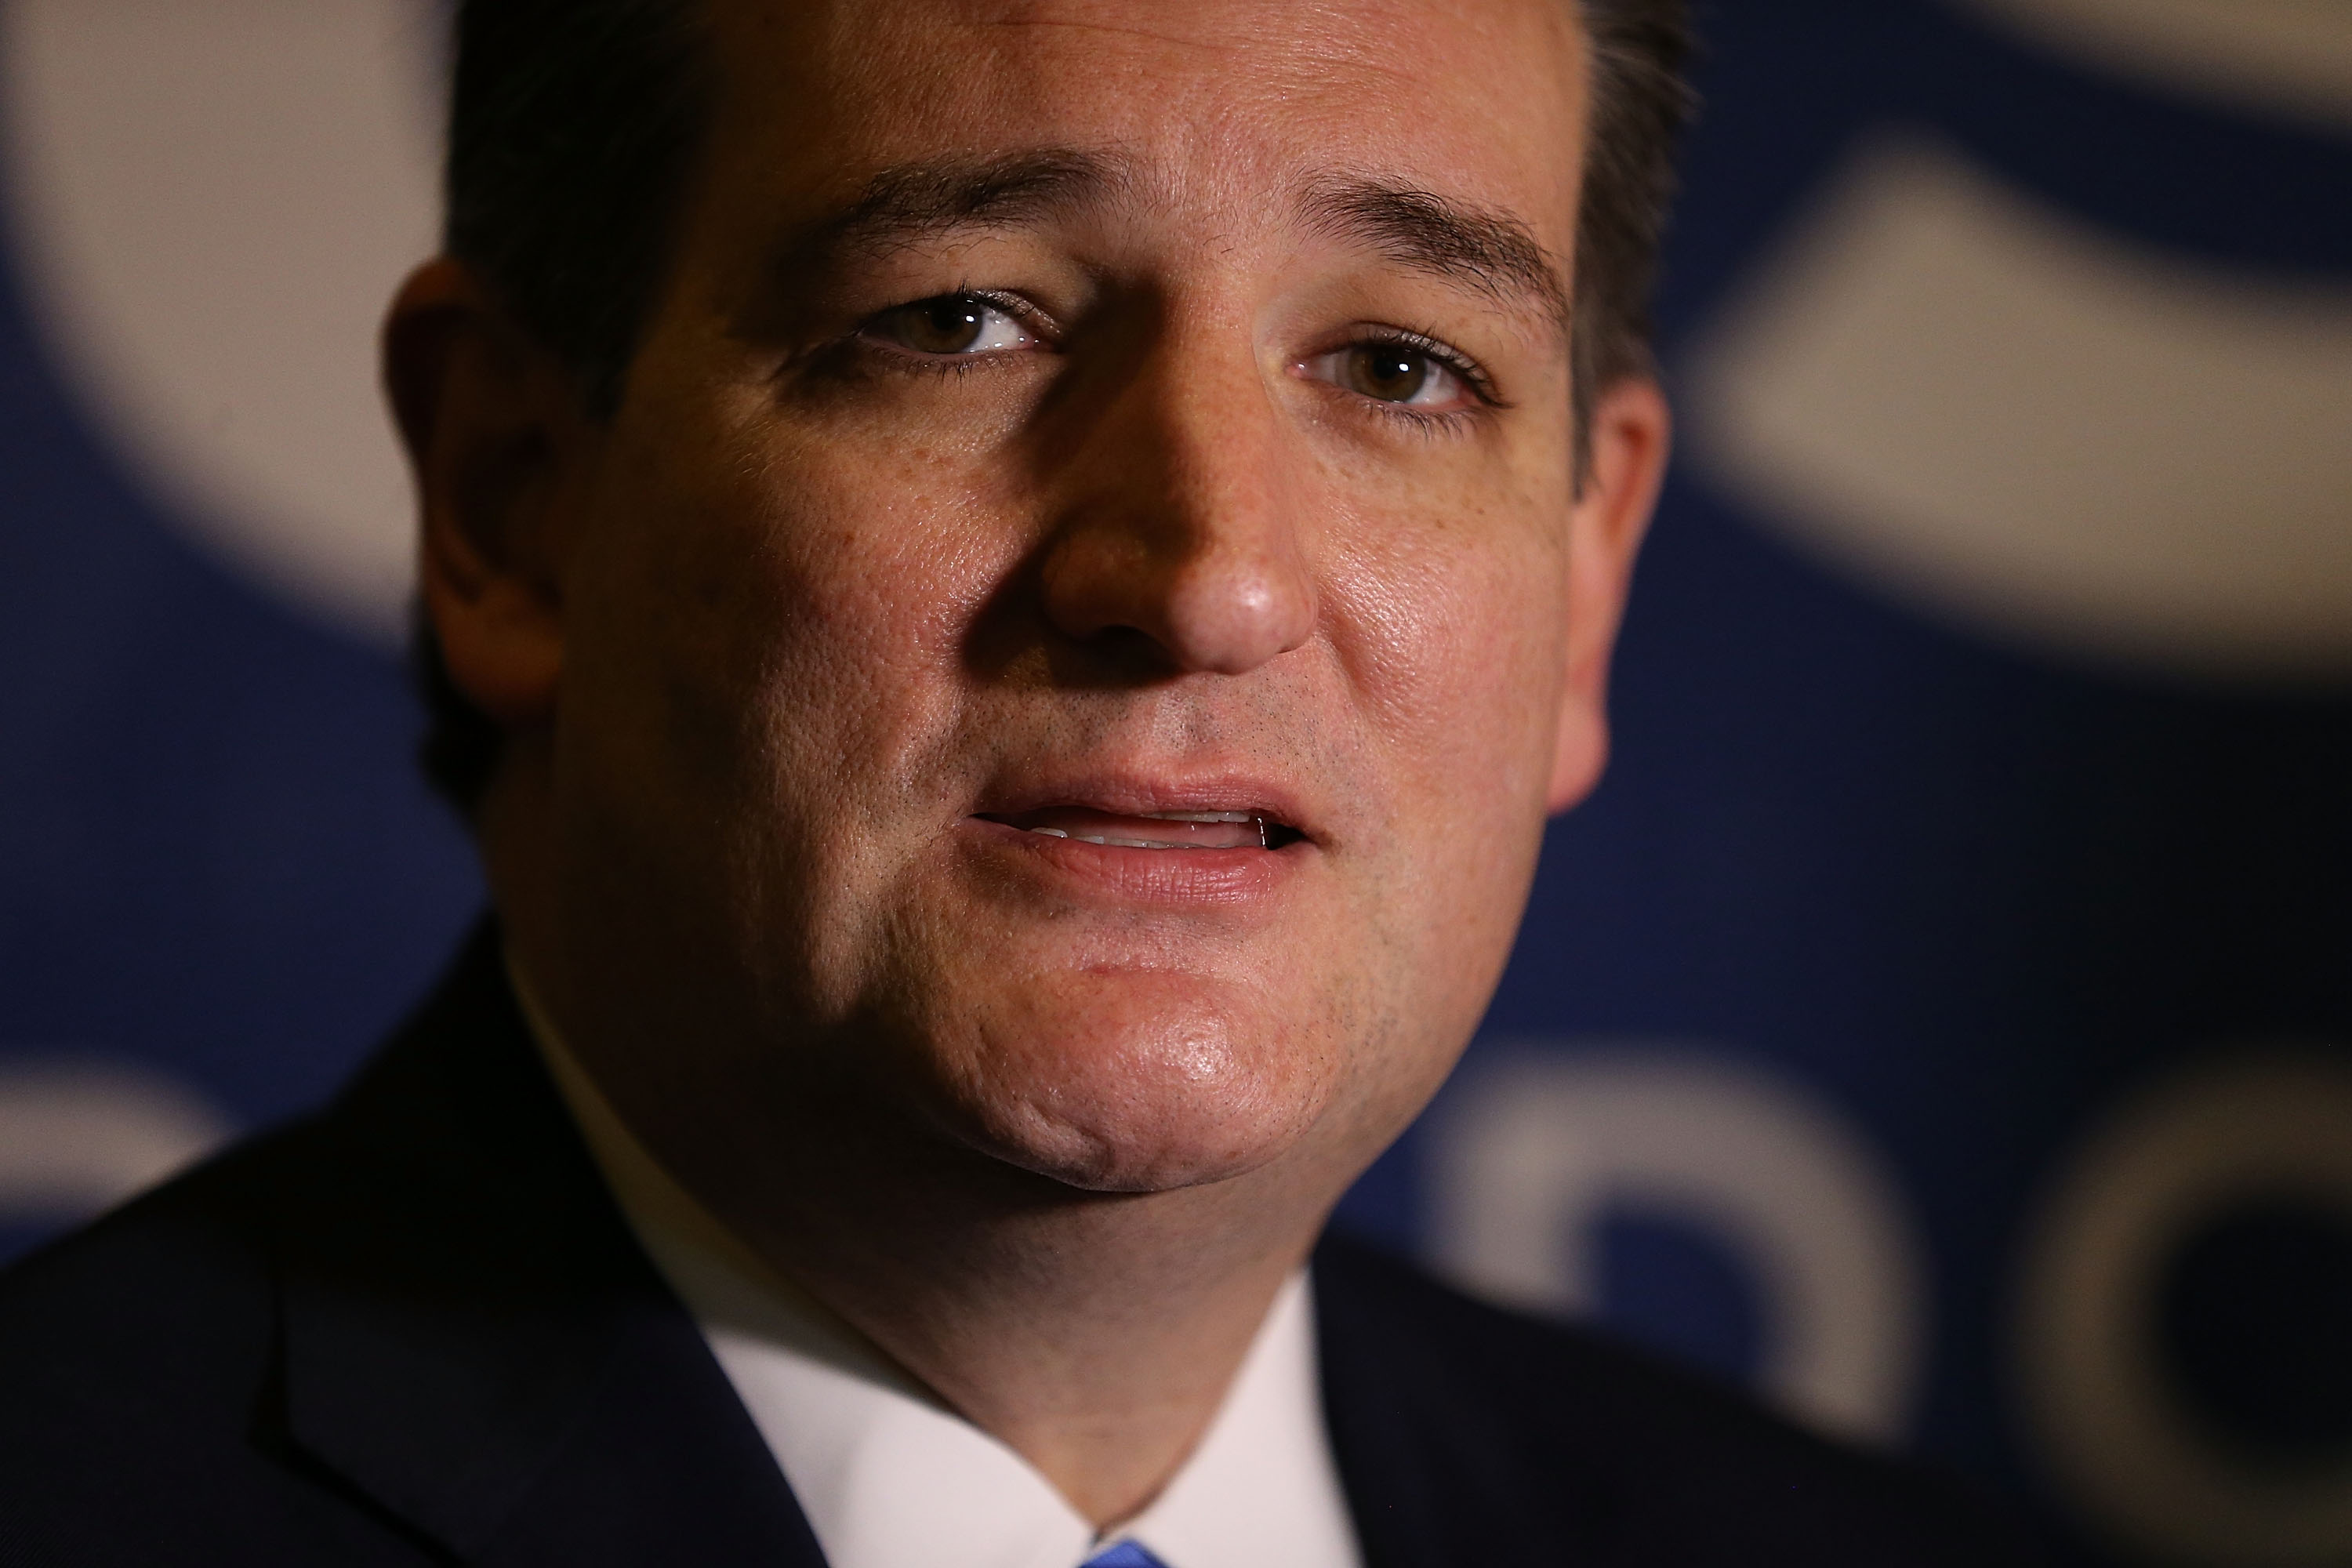 Ted Cruz dropped out of the presidential race on Tuesday night.